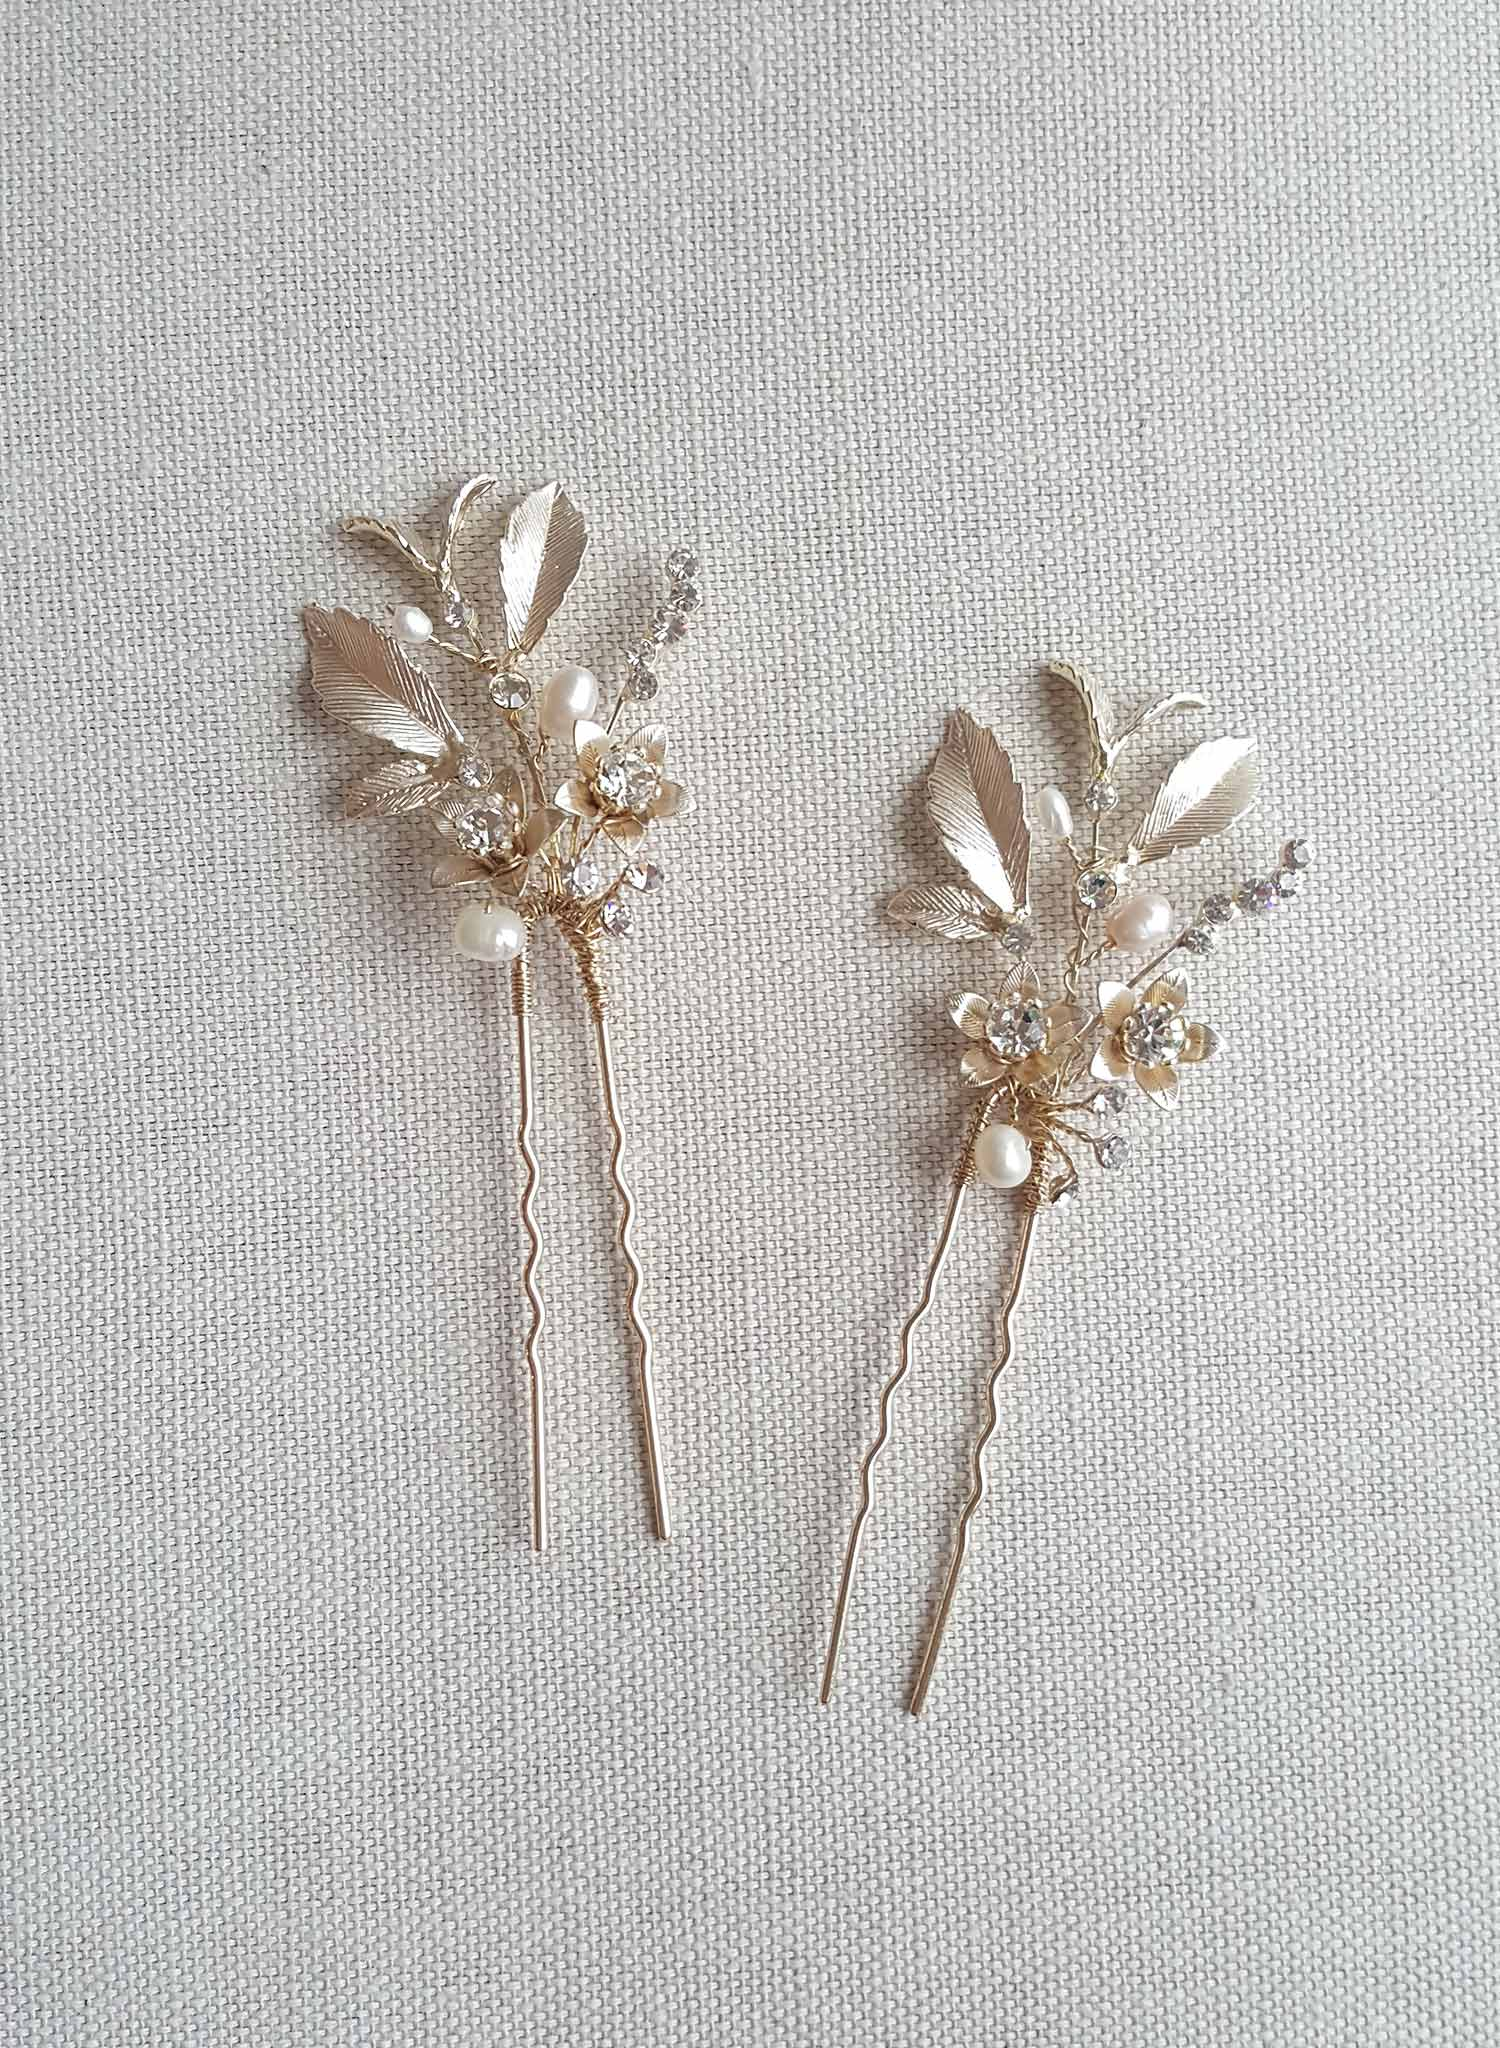 Dainty blossom and crystal hairpin - Style #858